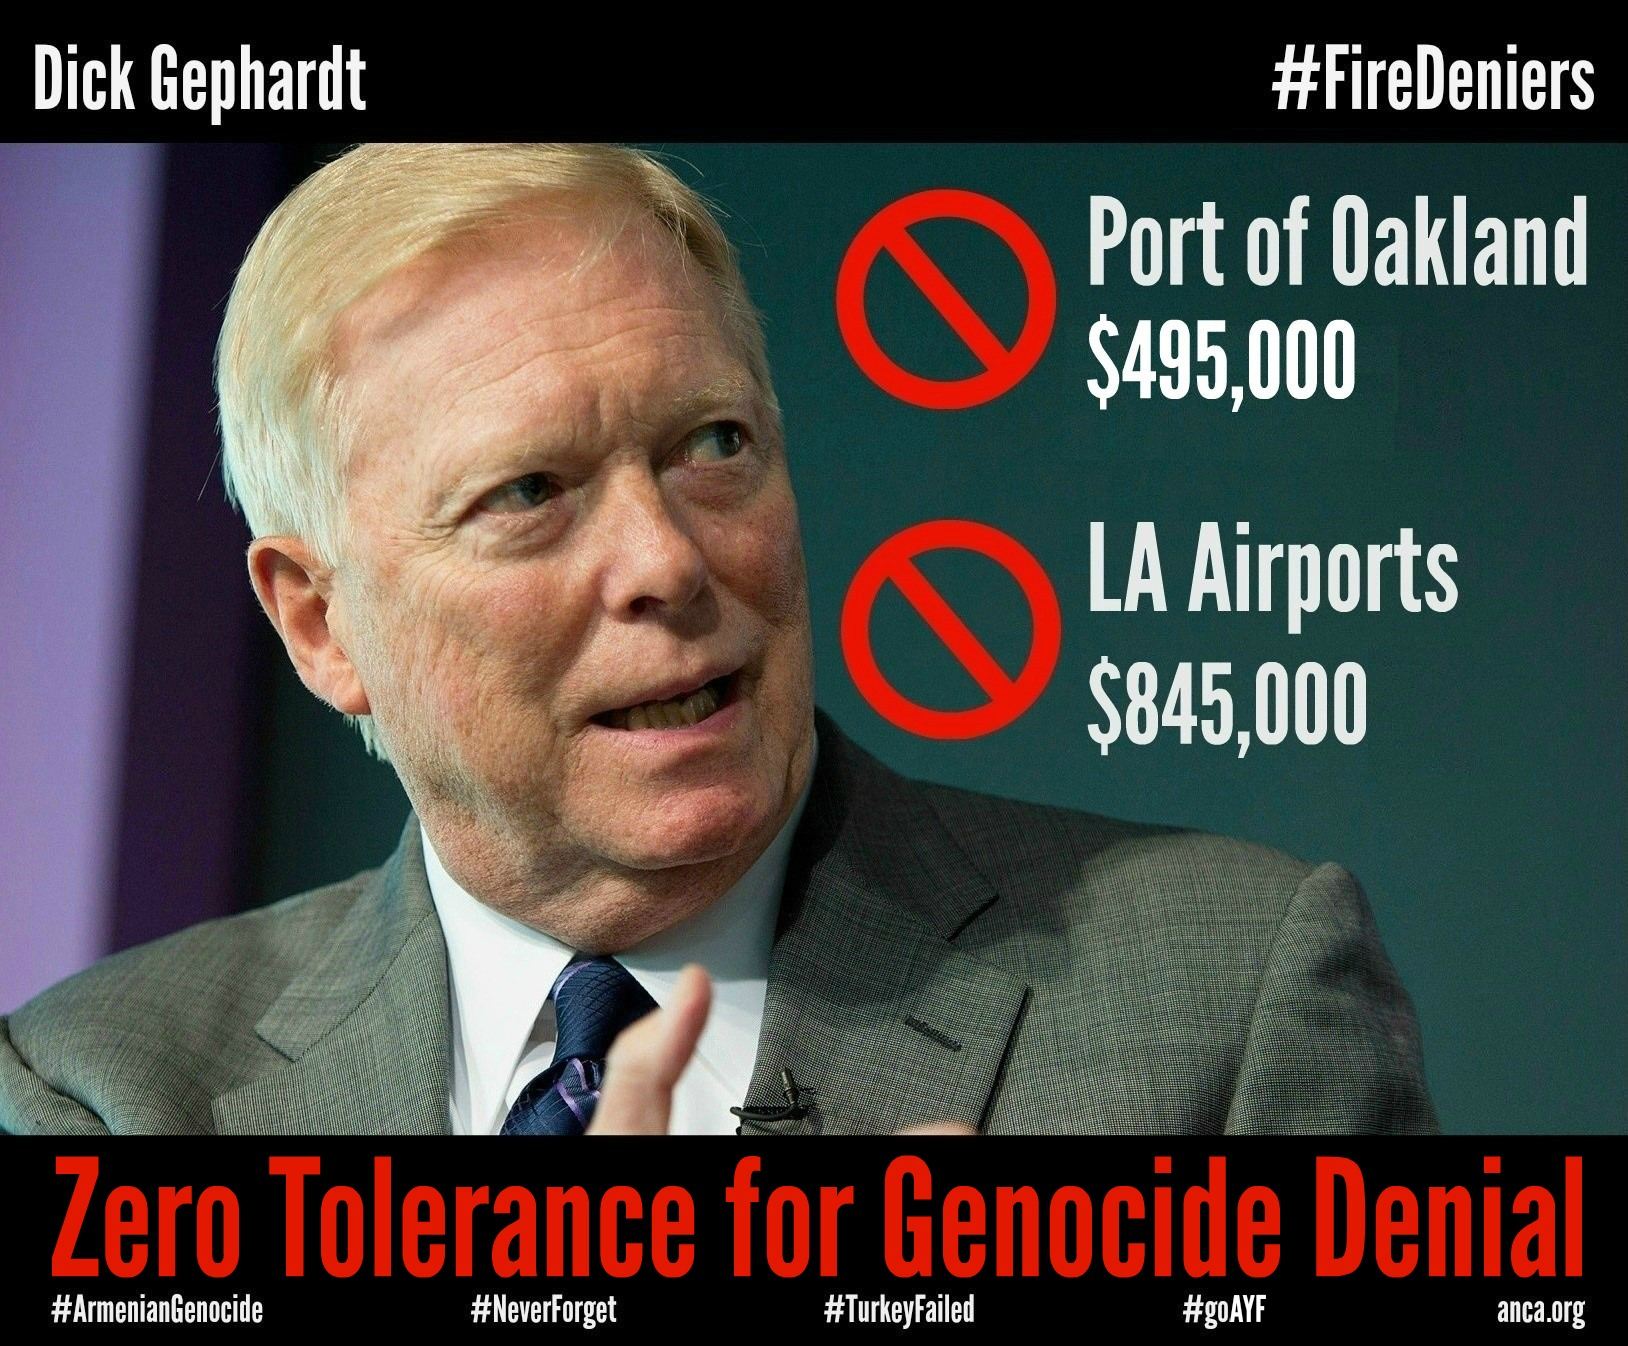 Dick gephardt statements about internet